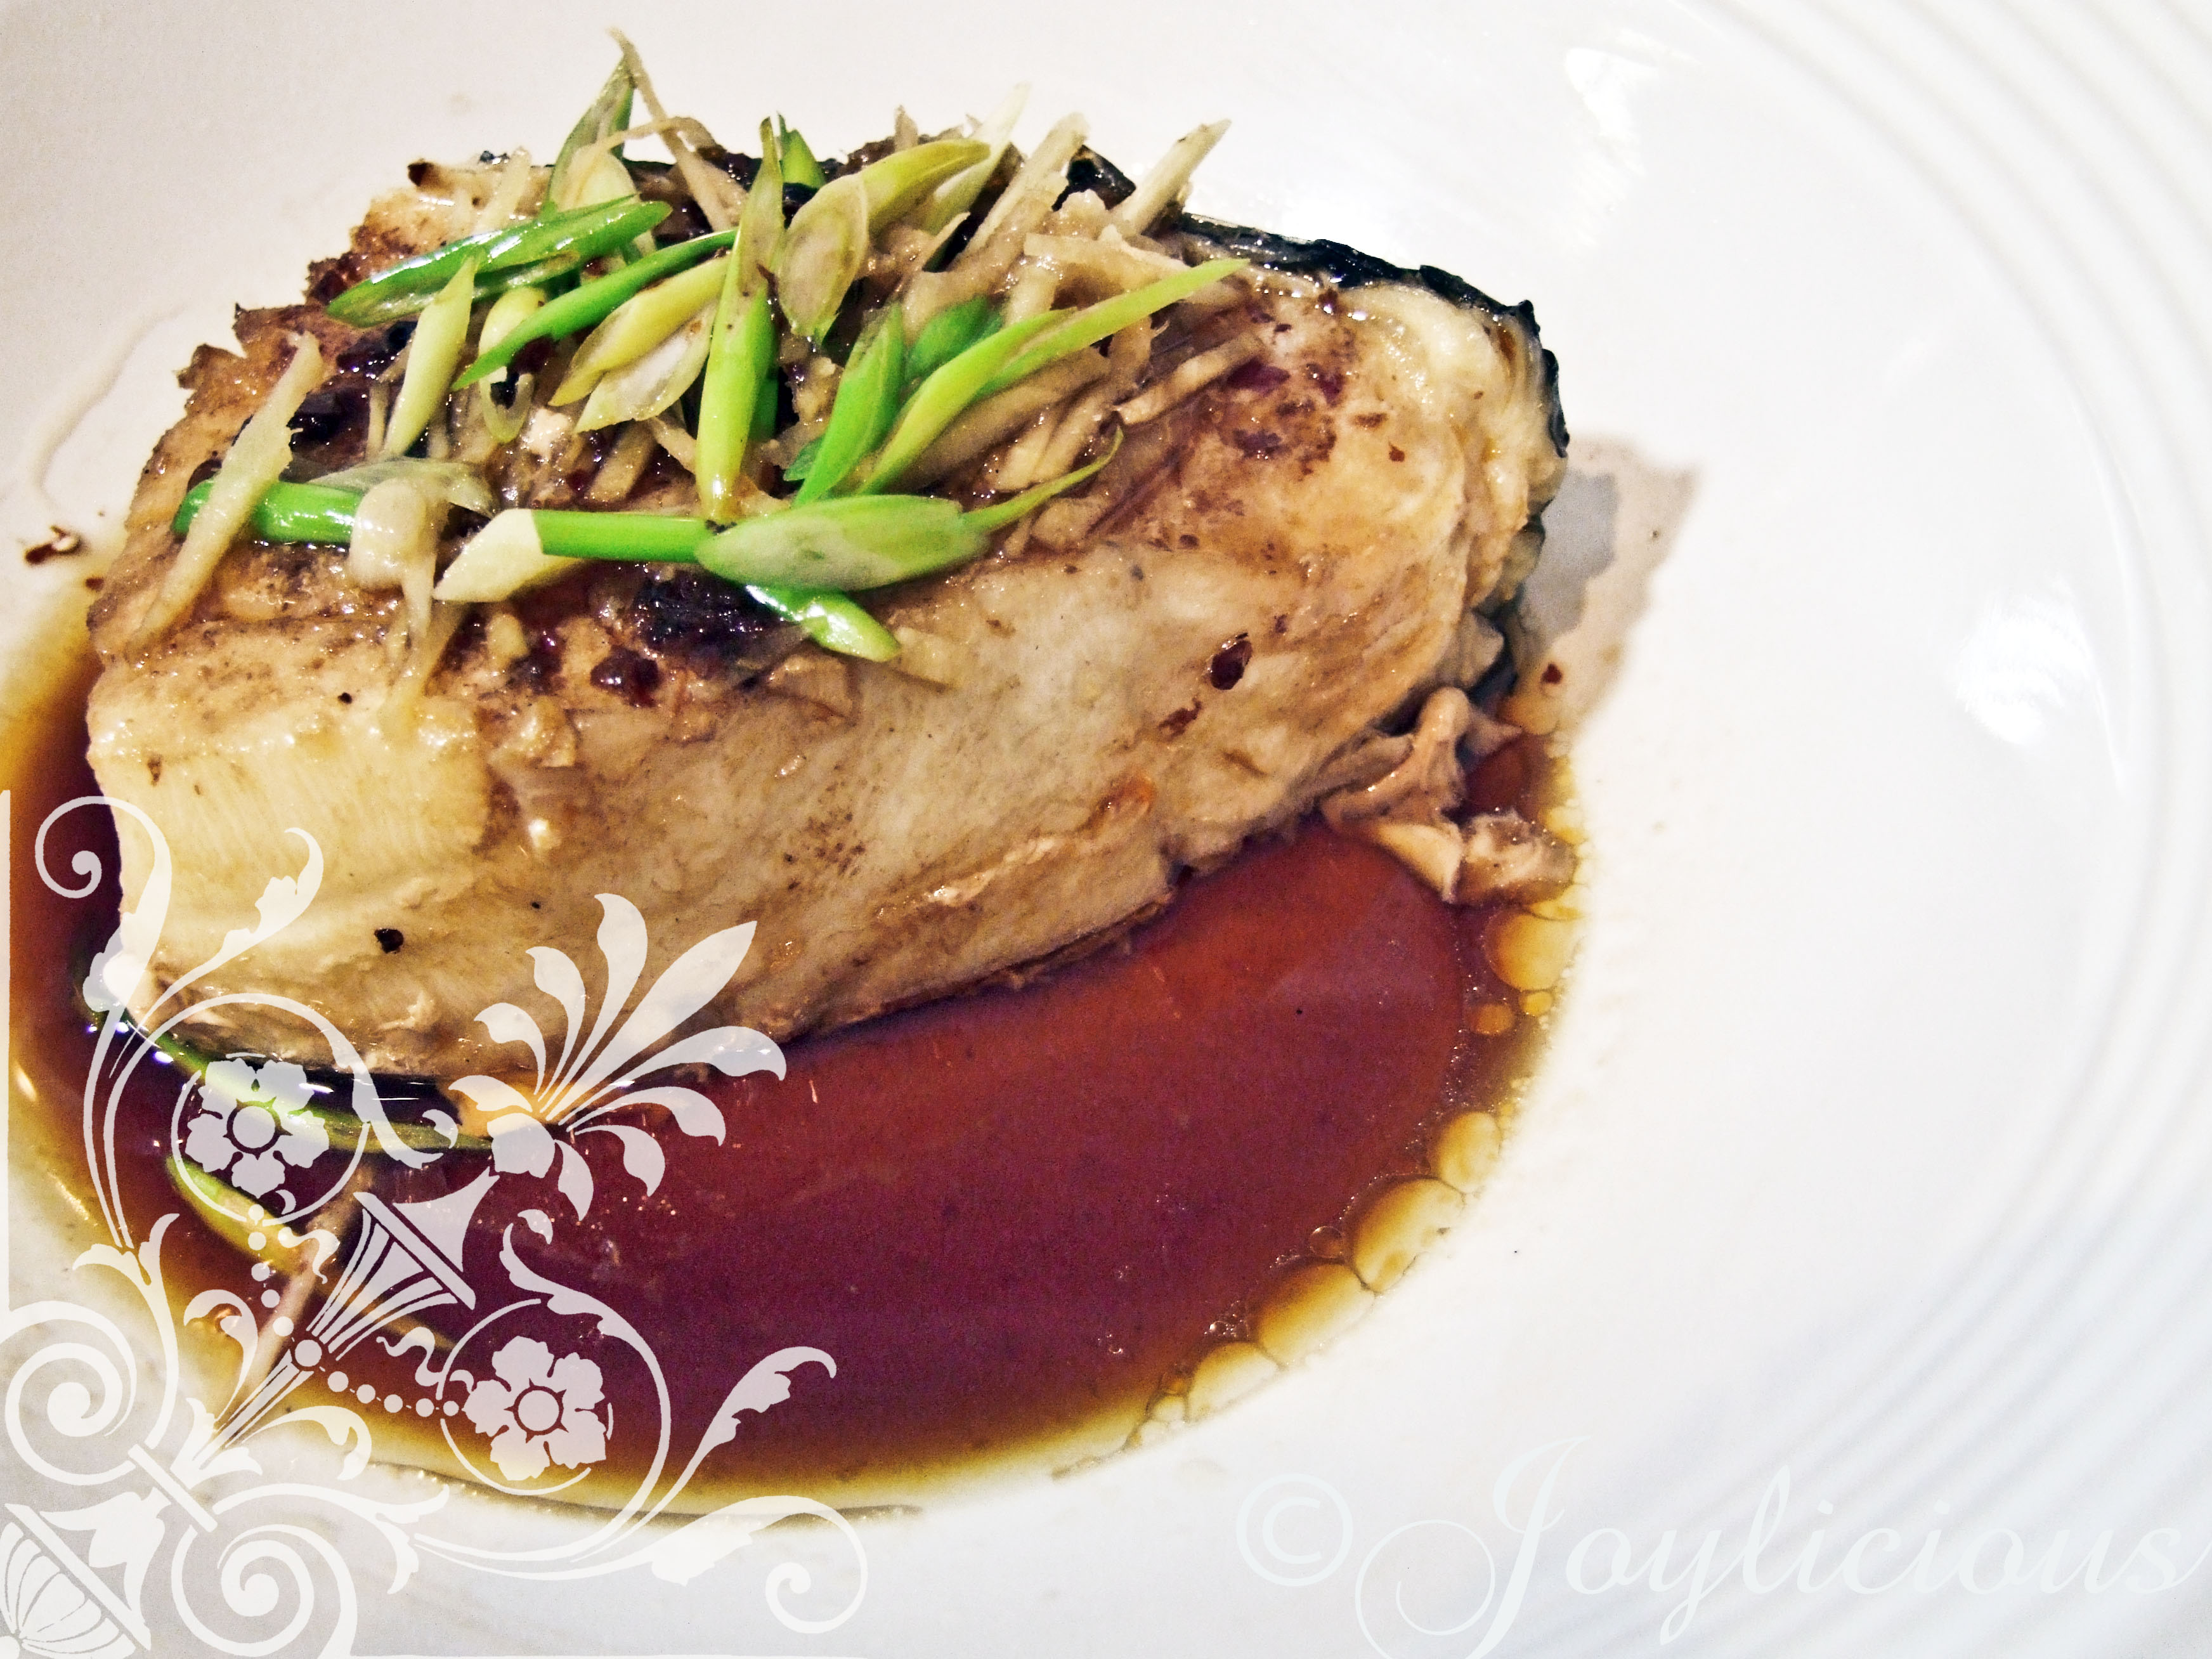 Discussion on this topic: Steamed Sea Bass with Ginger Recipe, steamed-sea-bass-with-ginger-recipe/